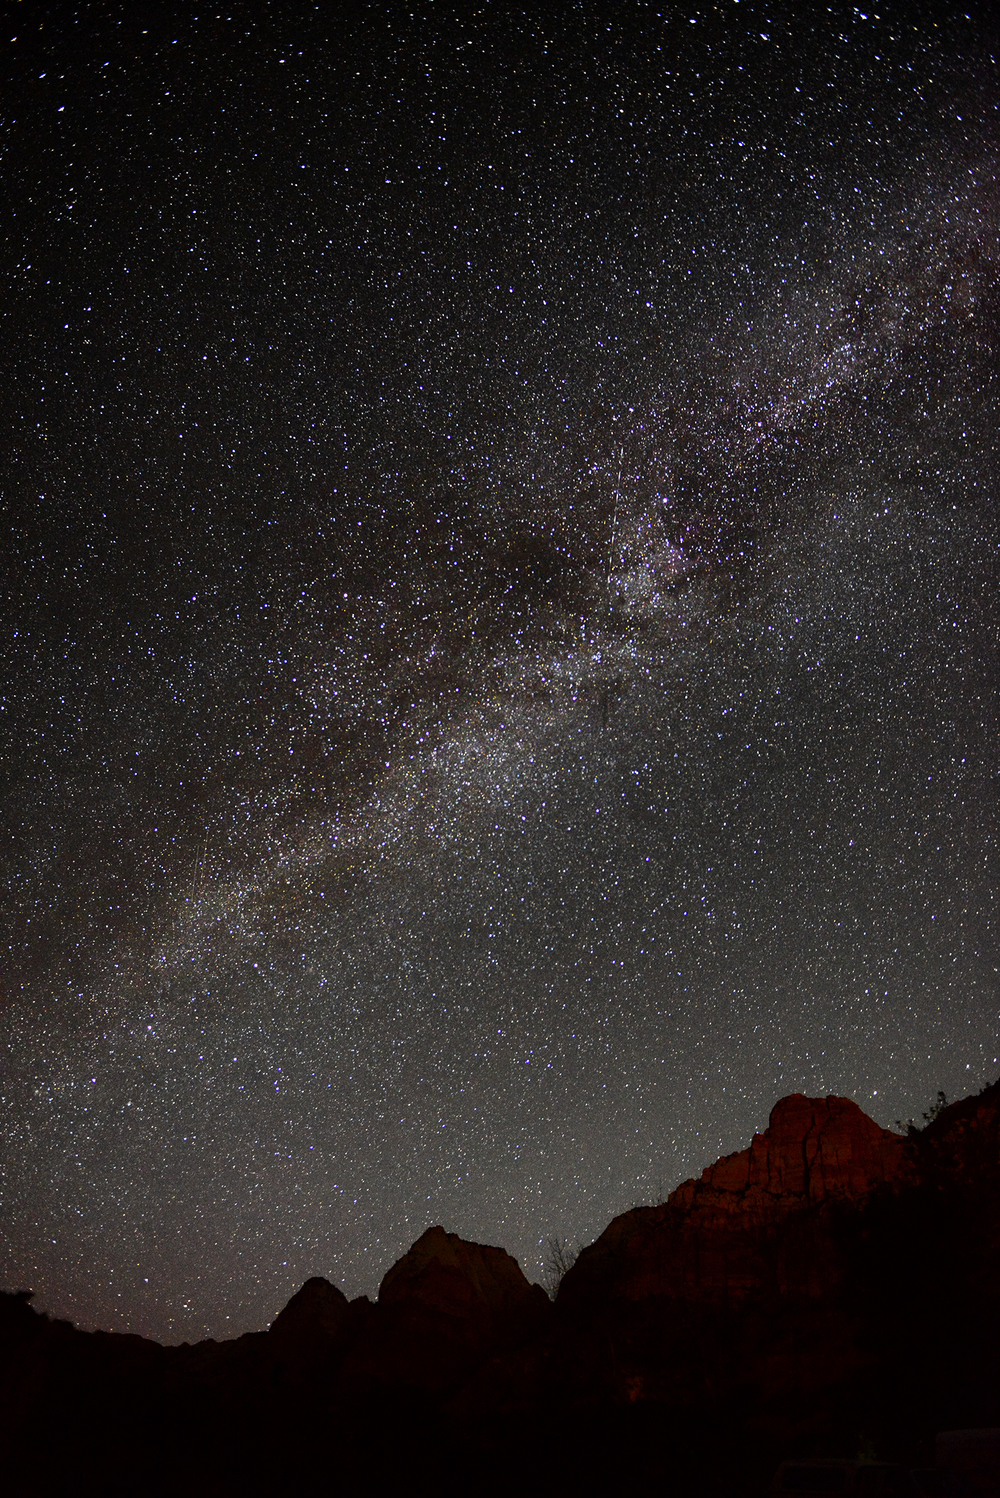 My first test shot of the Milky Way over Zion.